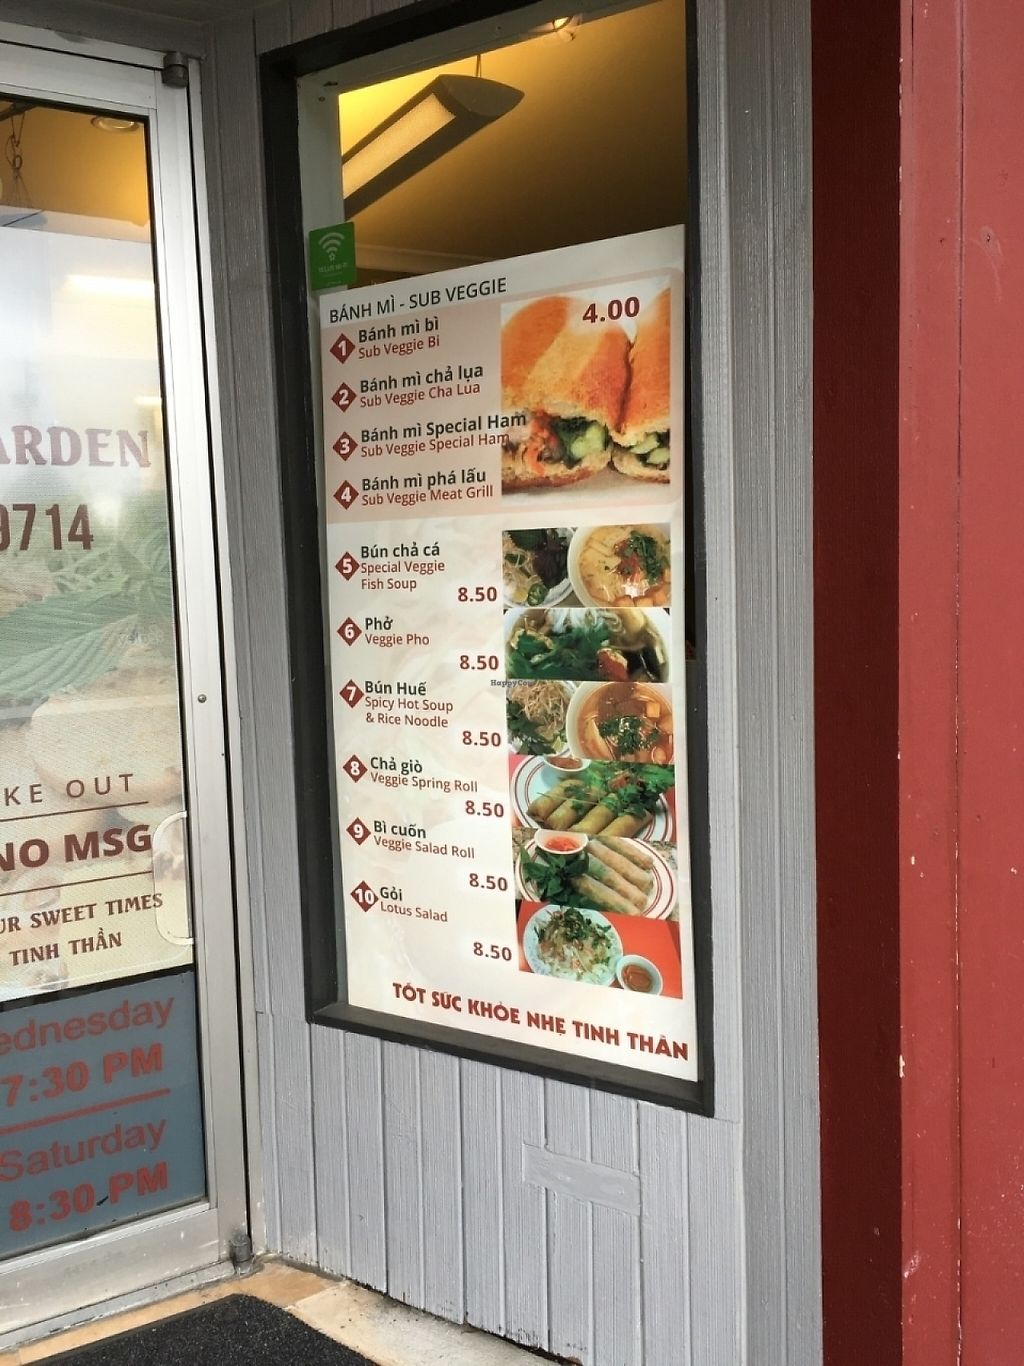 "Photo of Dharma Garden Veggie Deli  by <a href=""/members/profile/vegan%20frog"">vegan frog</a> <br/>Menu outside <br/> June 24, 2016  - <a href='/contact/abuse/image/66482/230770'>Report</a>"